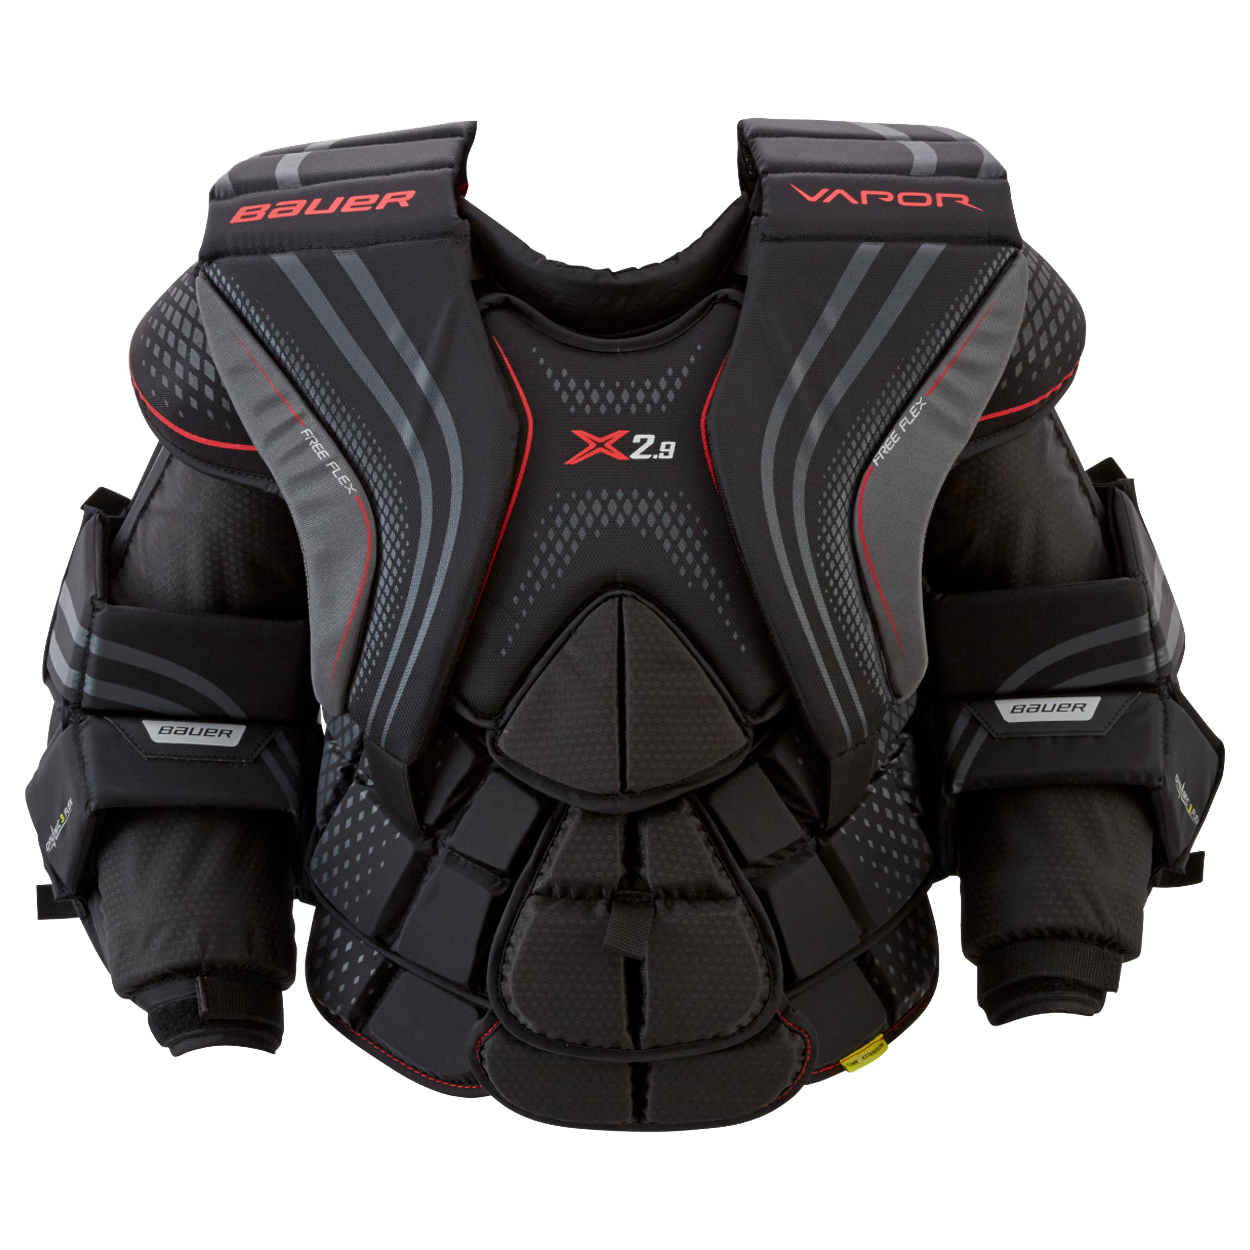 Vapor X2.9 Chest Protector Intermediate,,medium